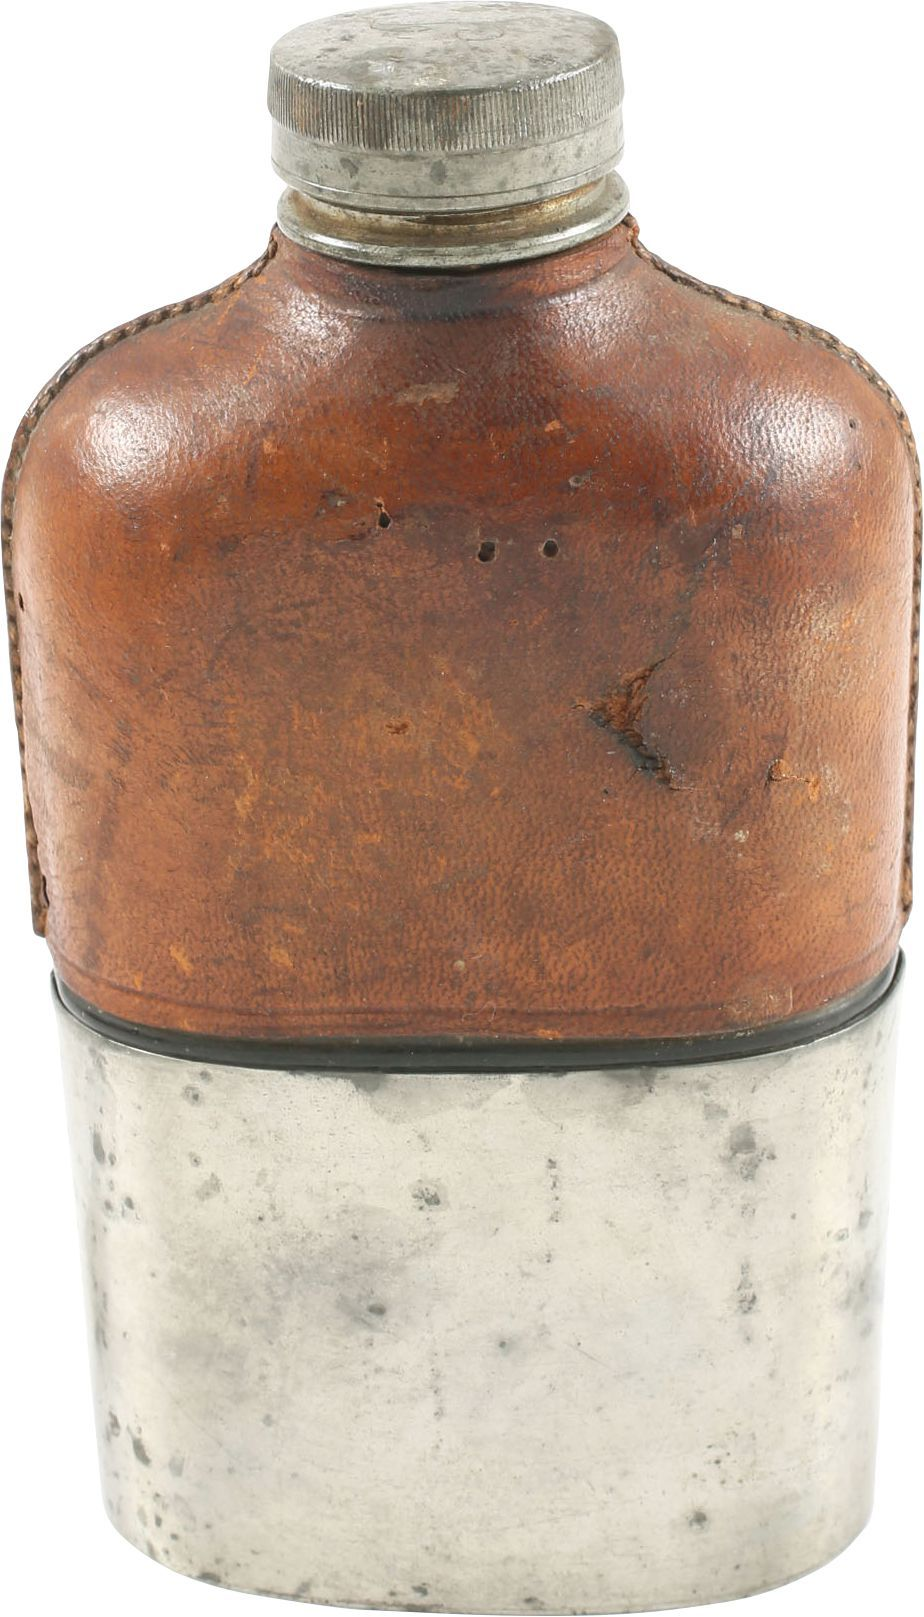 Civil War Whiskey Flask - Product